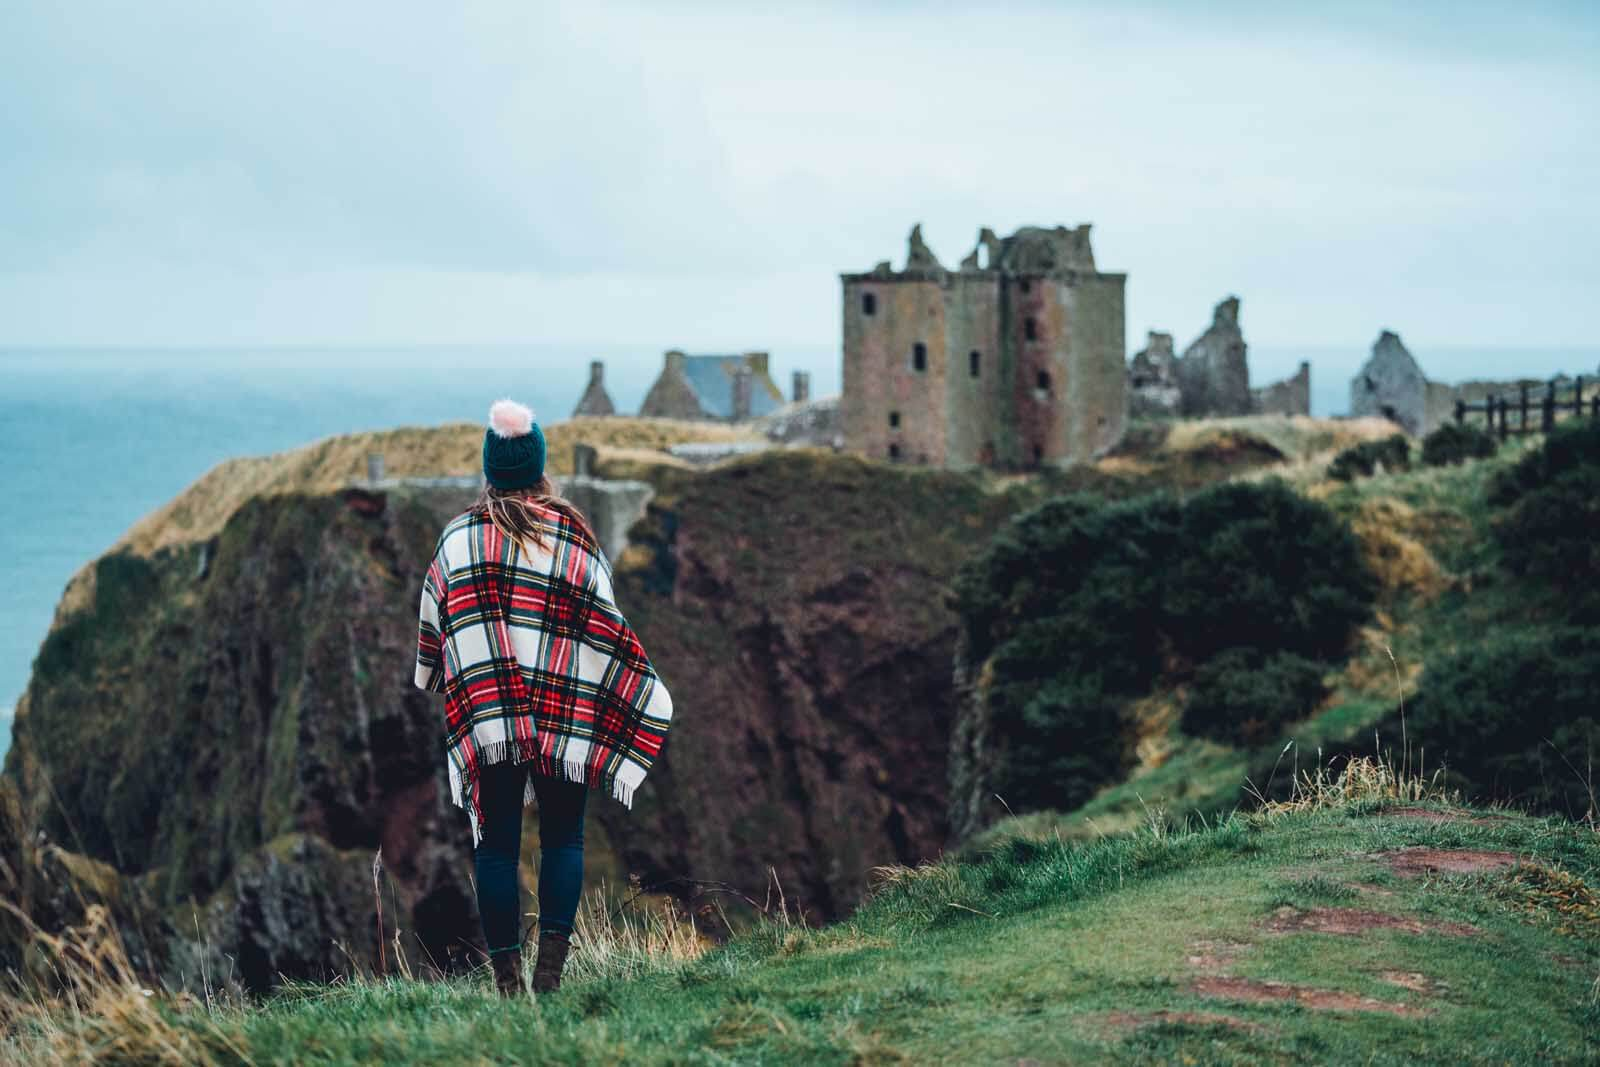 Megan looking at the view at Dunnottar Castle in Stonehaven